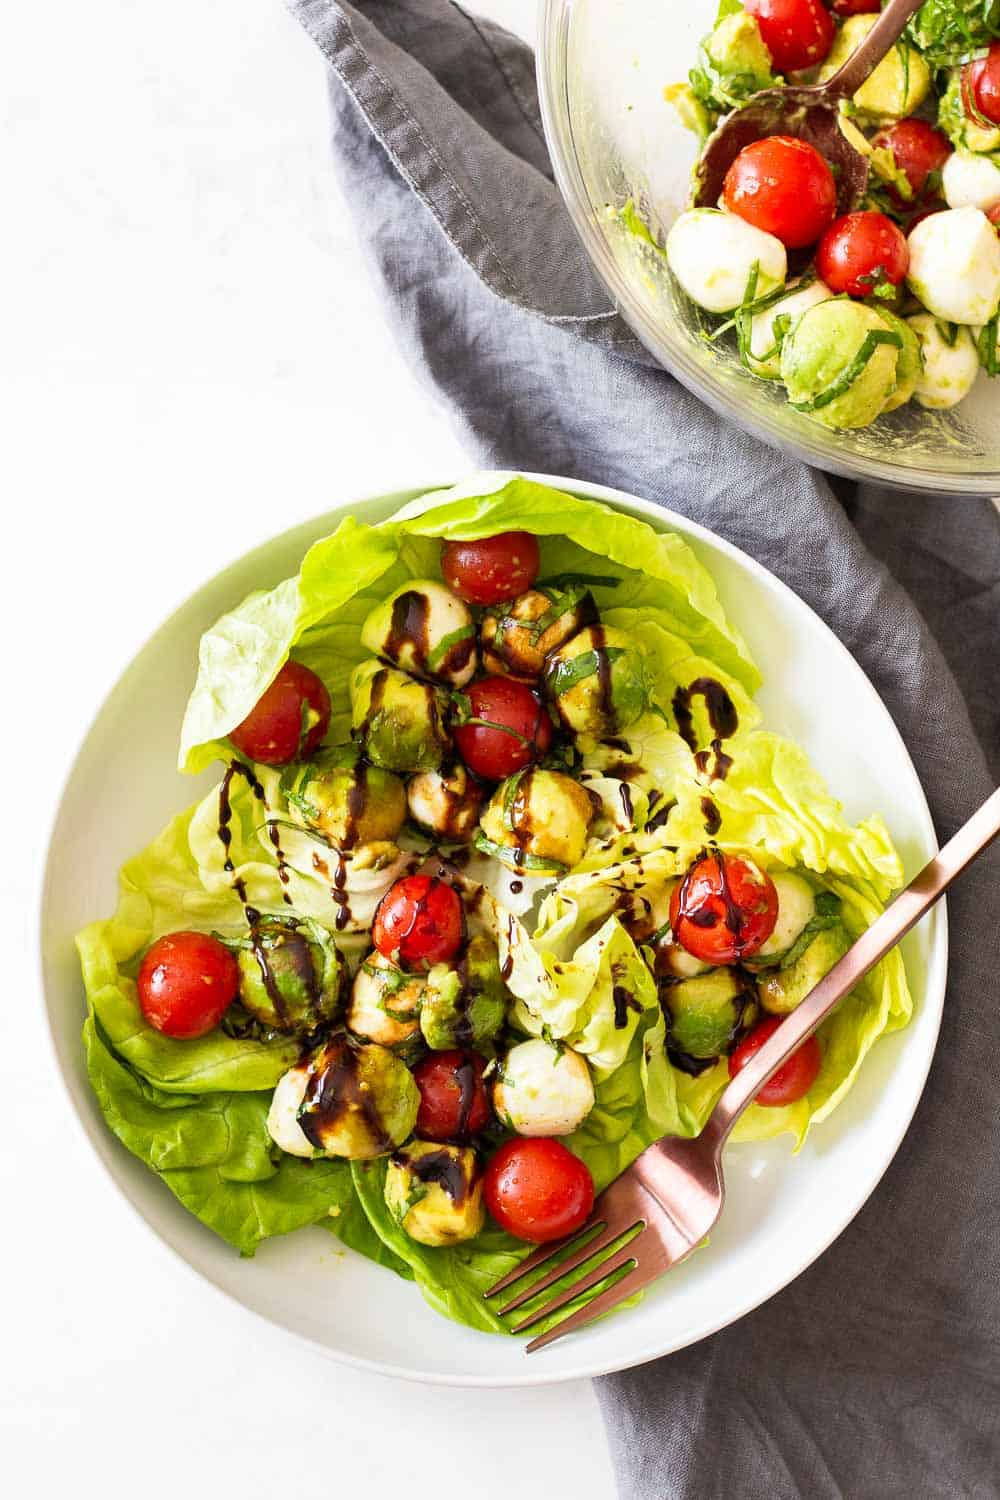 Tomato Avocado Salad served in butter lettuce leaves on a white plate.